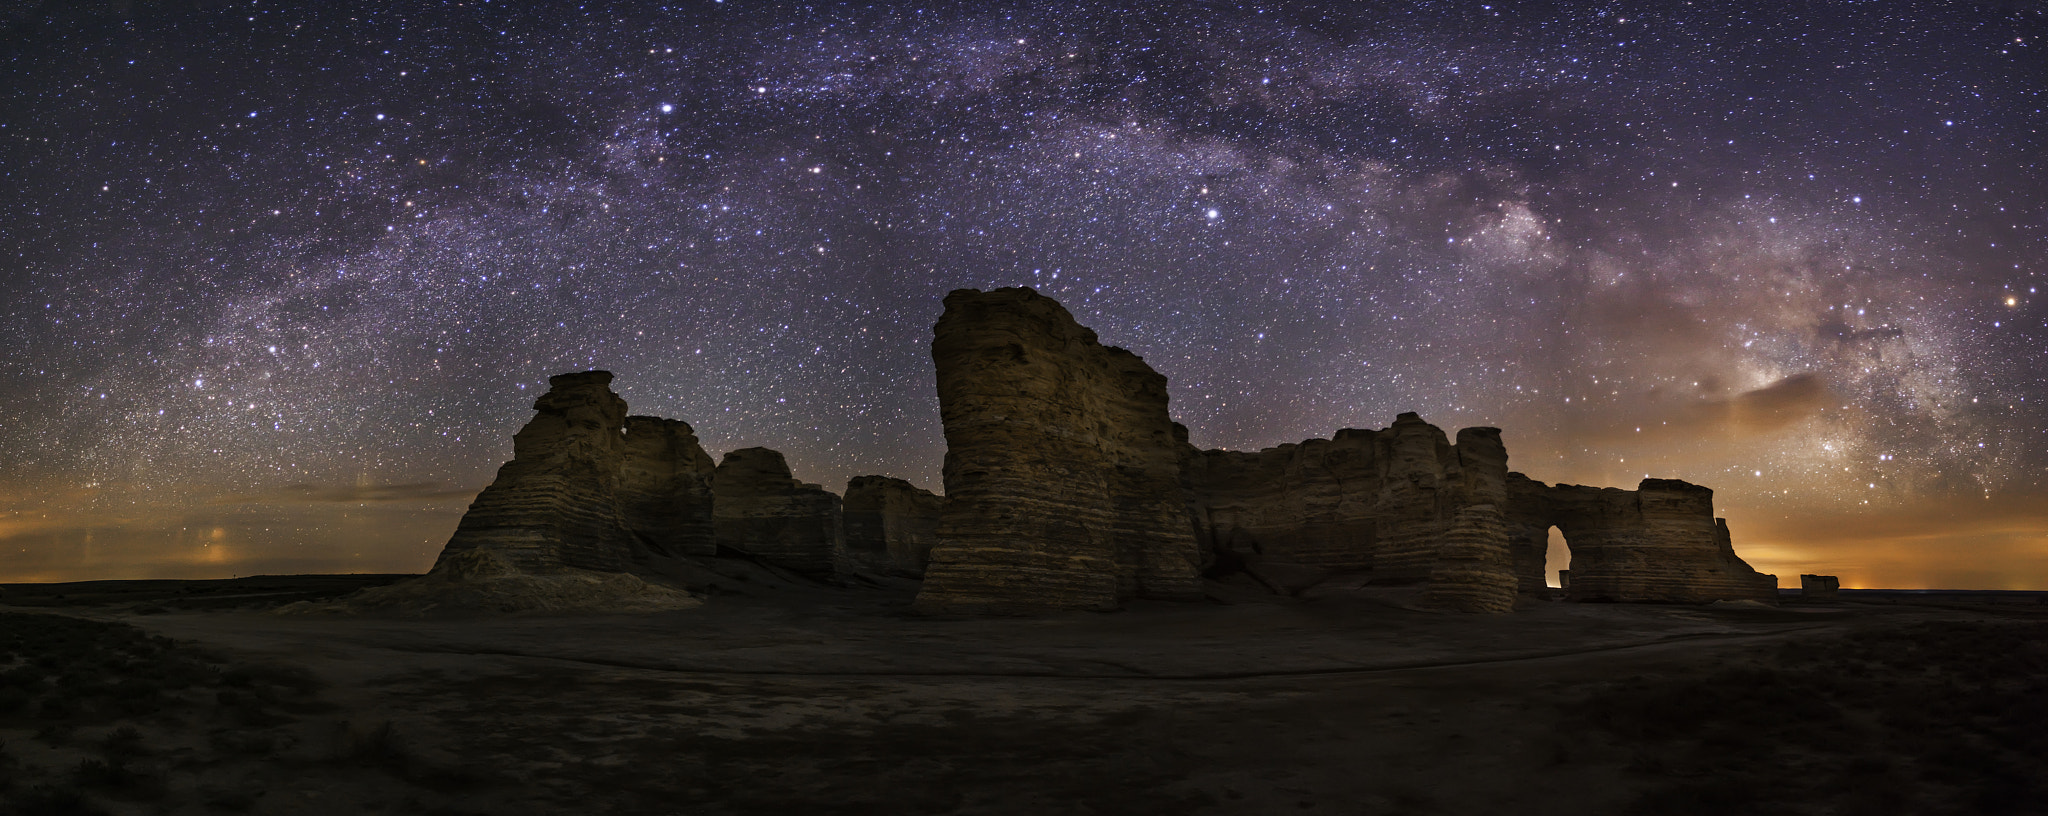 Photograph Monument Rocks and the Way by Scott Ackerman on 500px